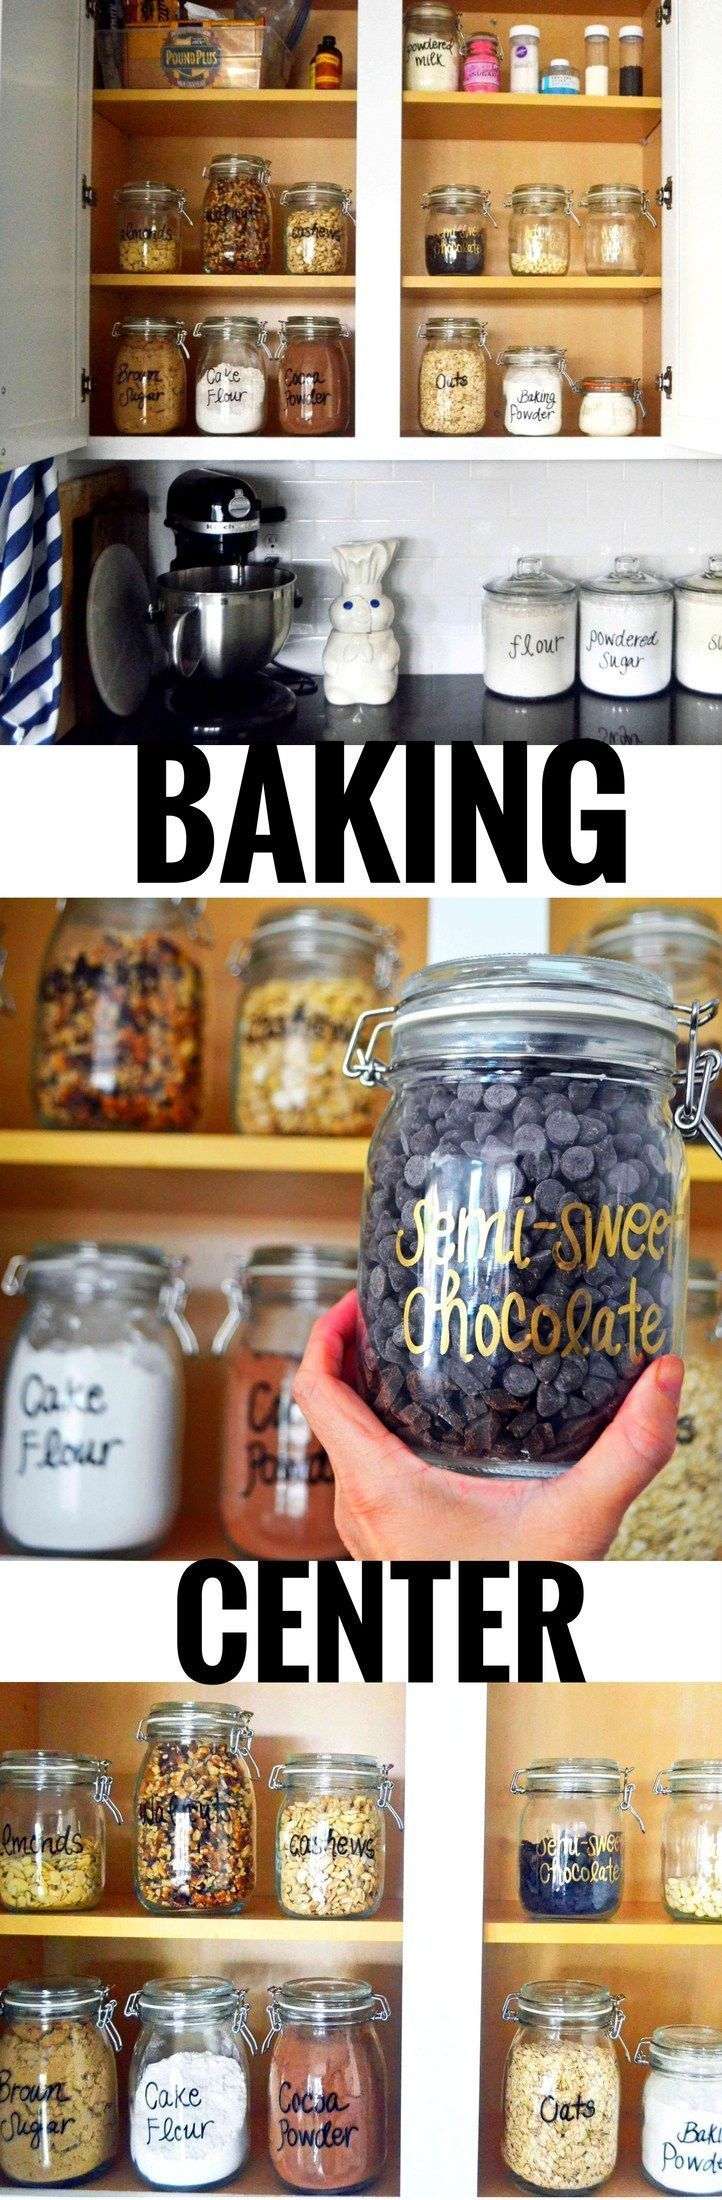 Baking Supplies Storage and Organization. Ideas on how to create the ultimate baking center in your kitchen plus a list of baking ingredients. http://www.modernhoney.com